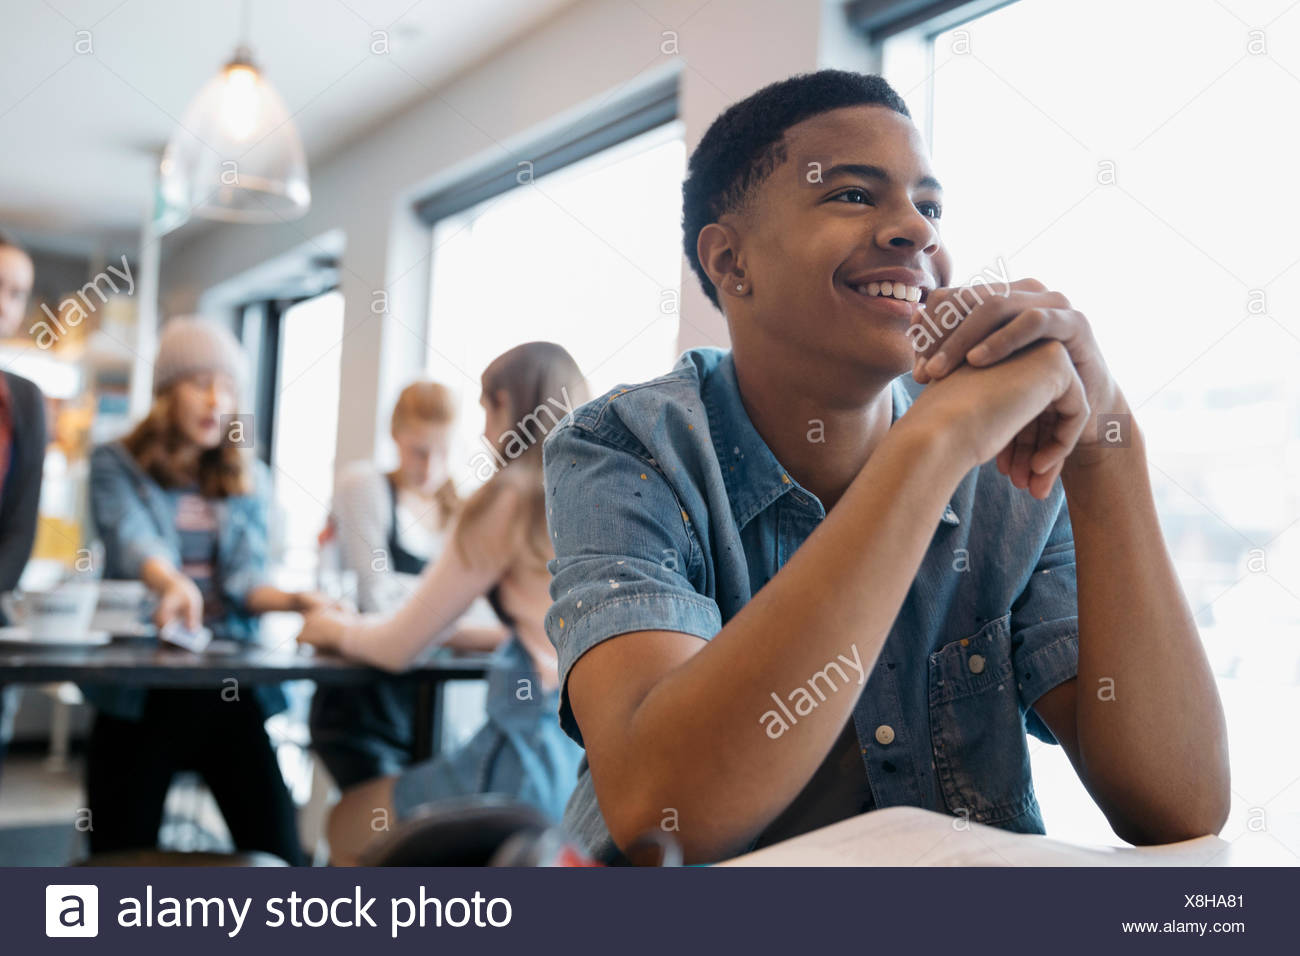 Smiling,confiant African American boy high school student studying in cafe Photo Stock